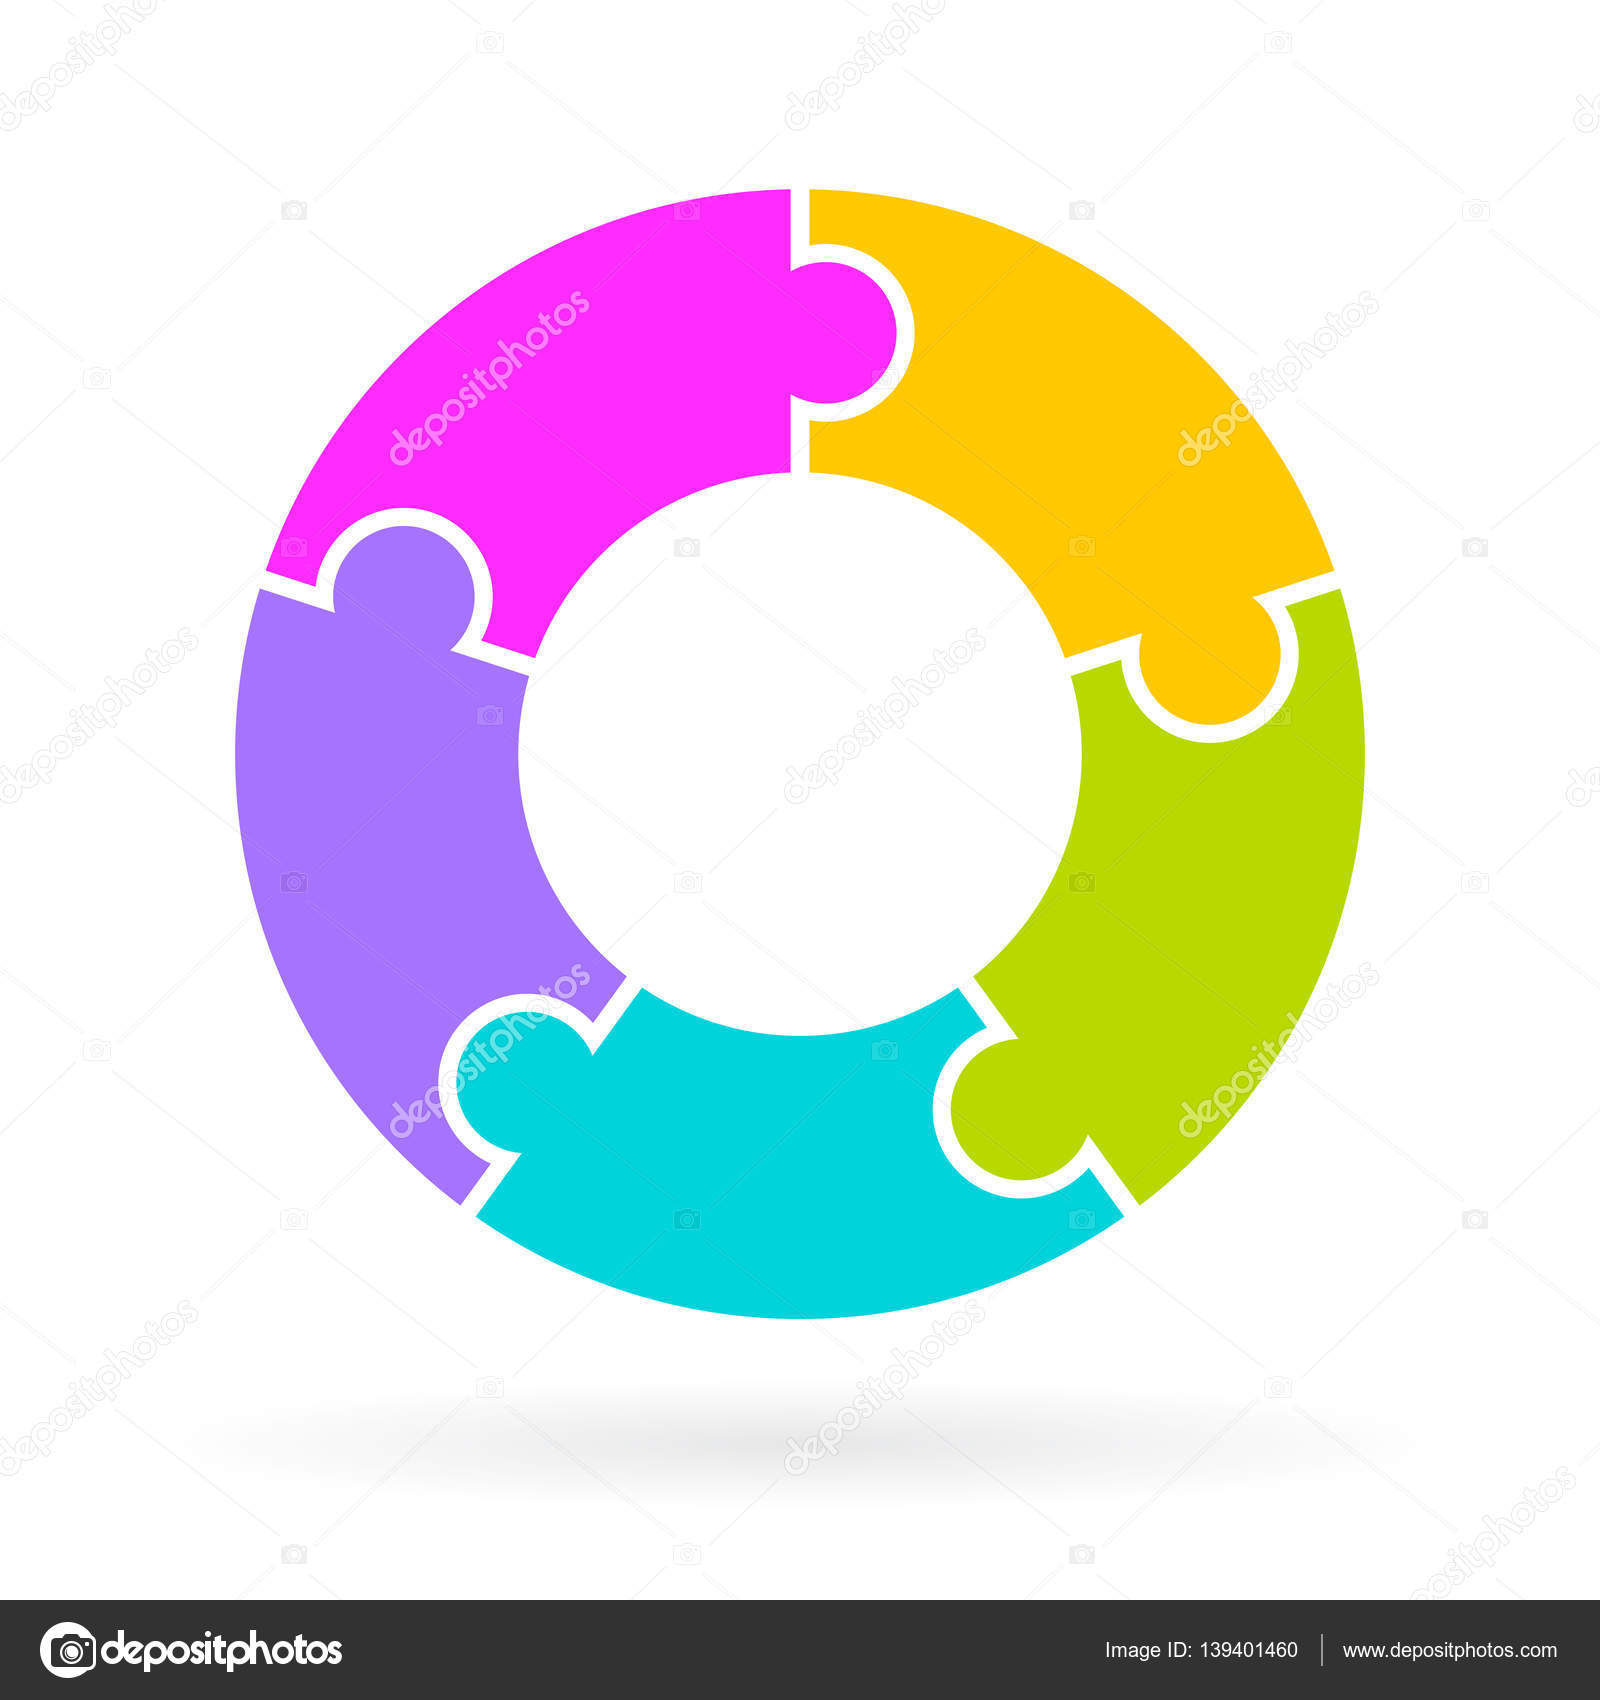 5 Steps Lifecycle Diagram Stock Vector Illustration Of Wiring Diagram